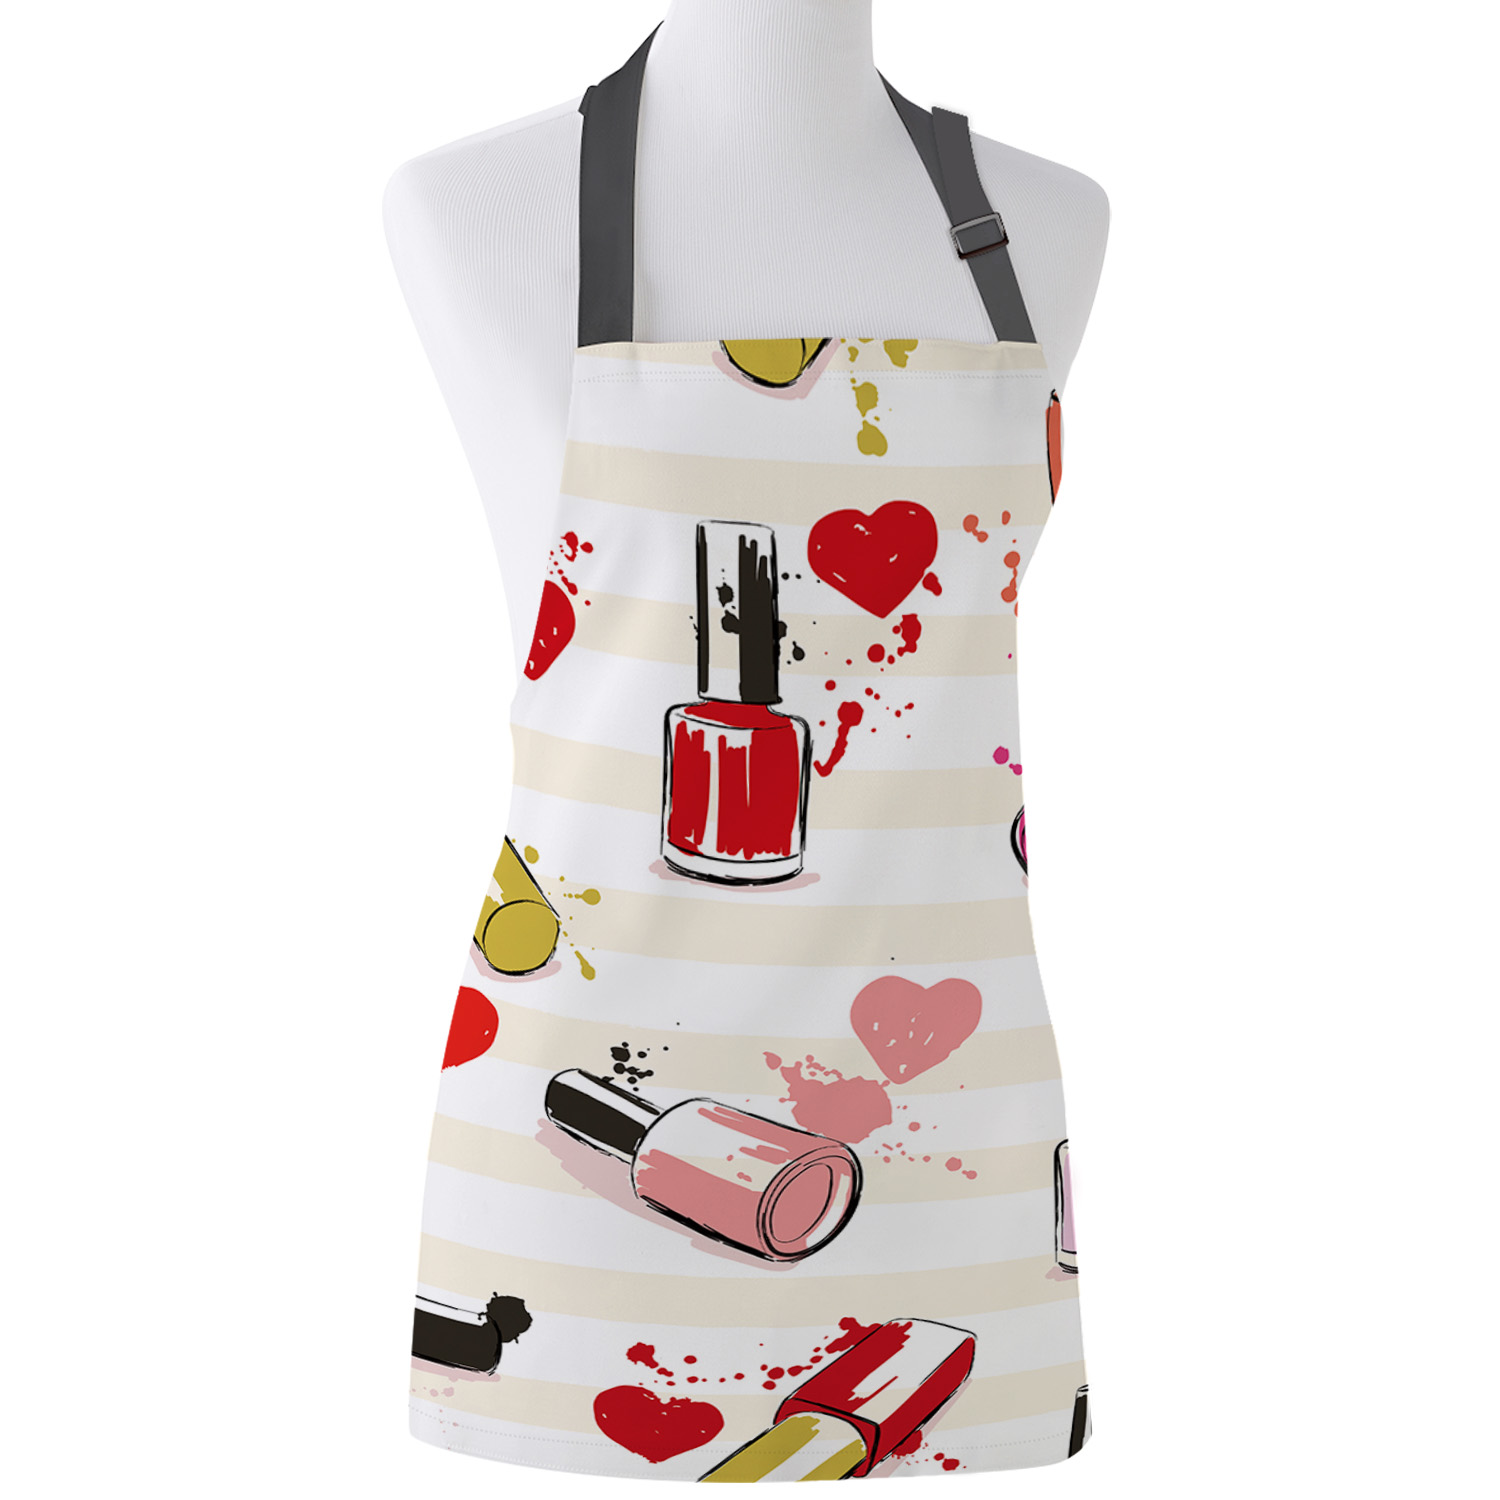 Tophome Kitchen Apron Cosmetic Nail Polish Female Cartoon  Adjustable  Canvas Aprons For Men Women Kids Home Cleaning Tools